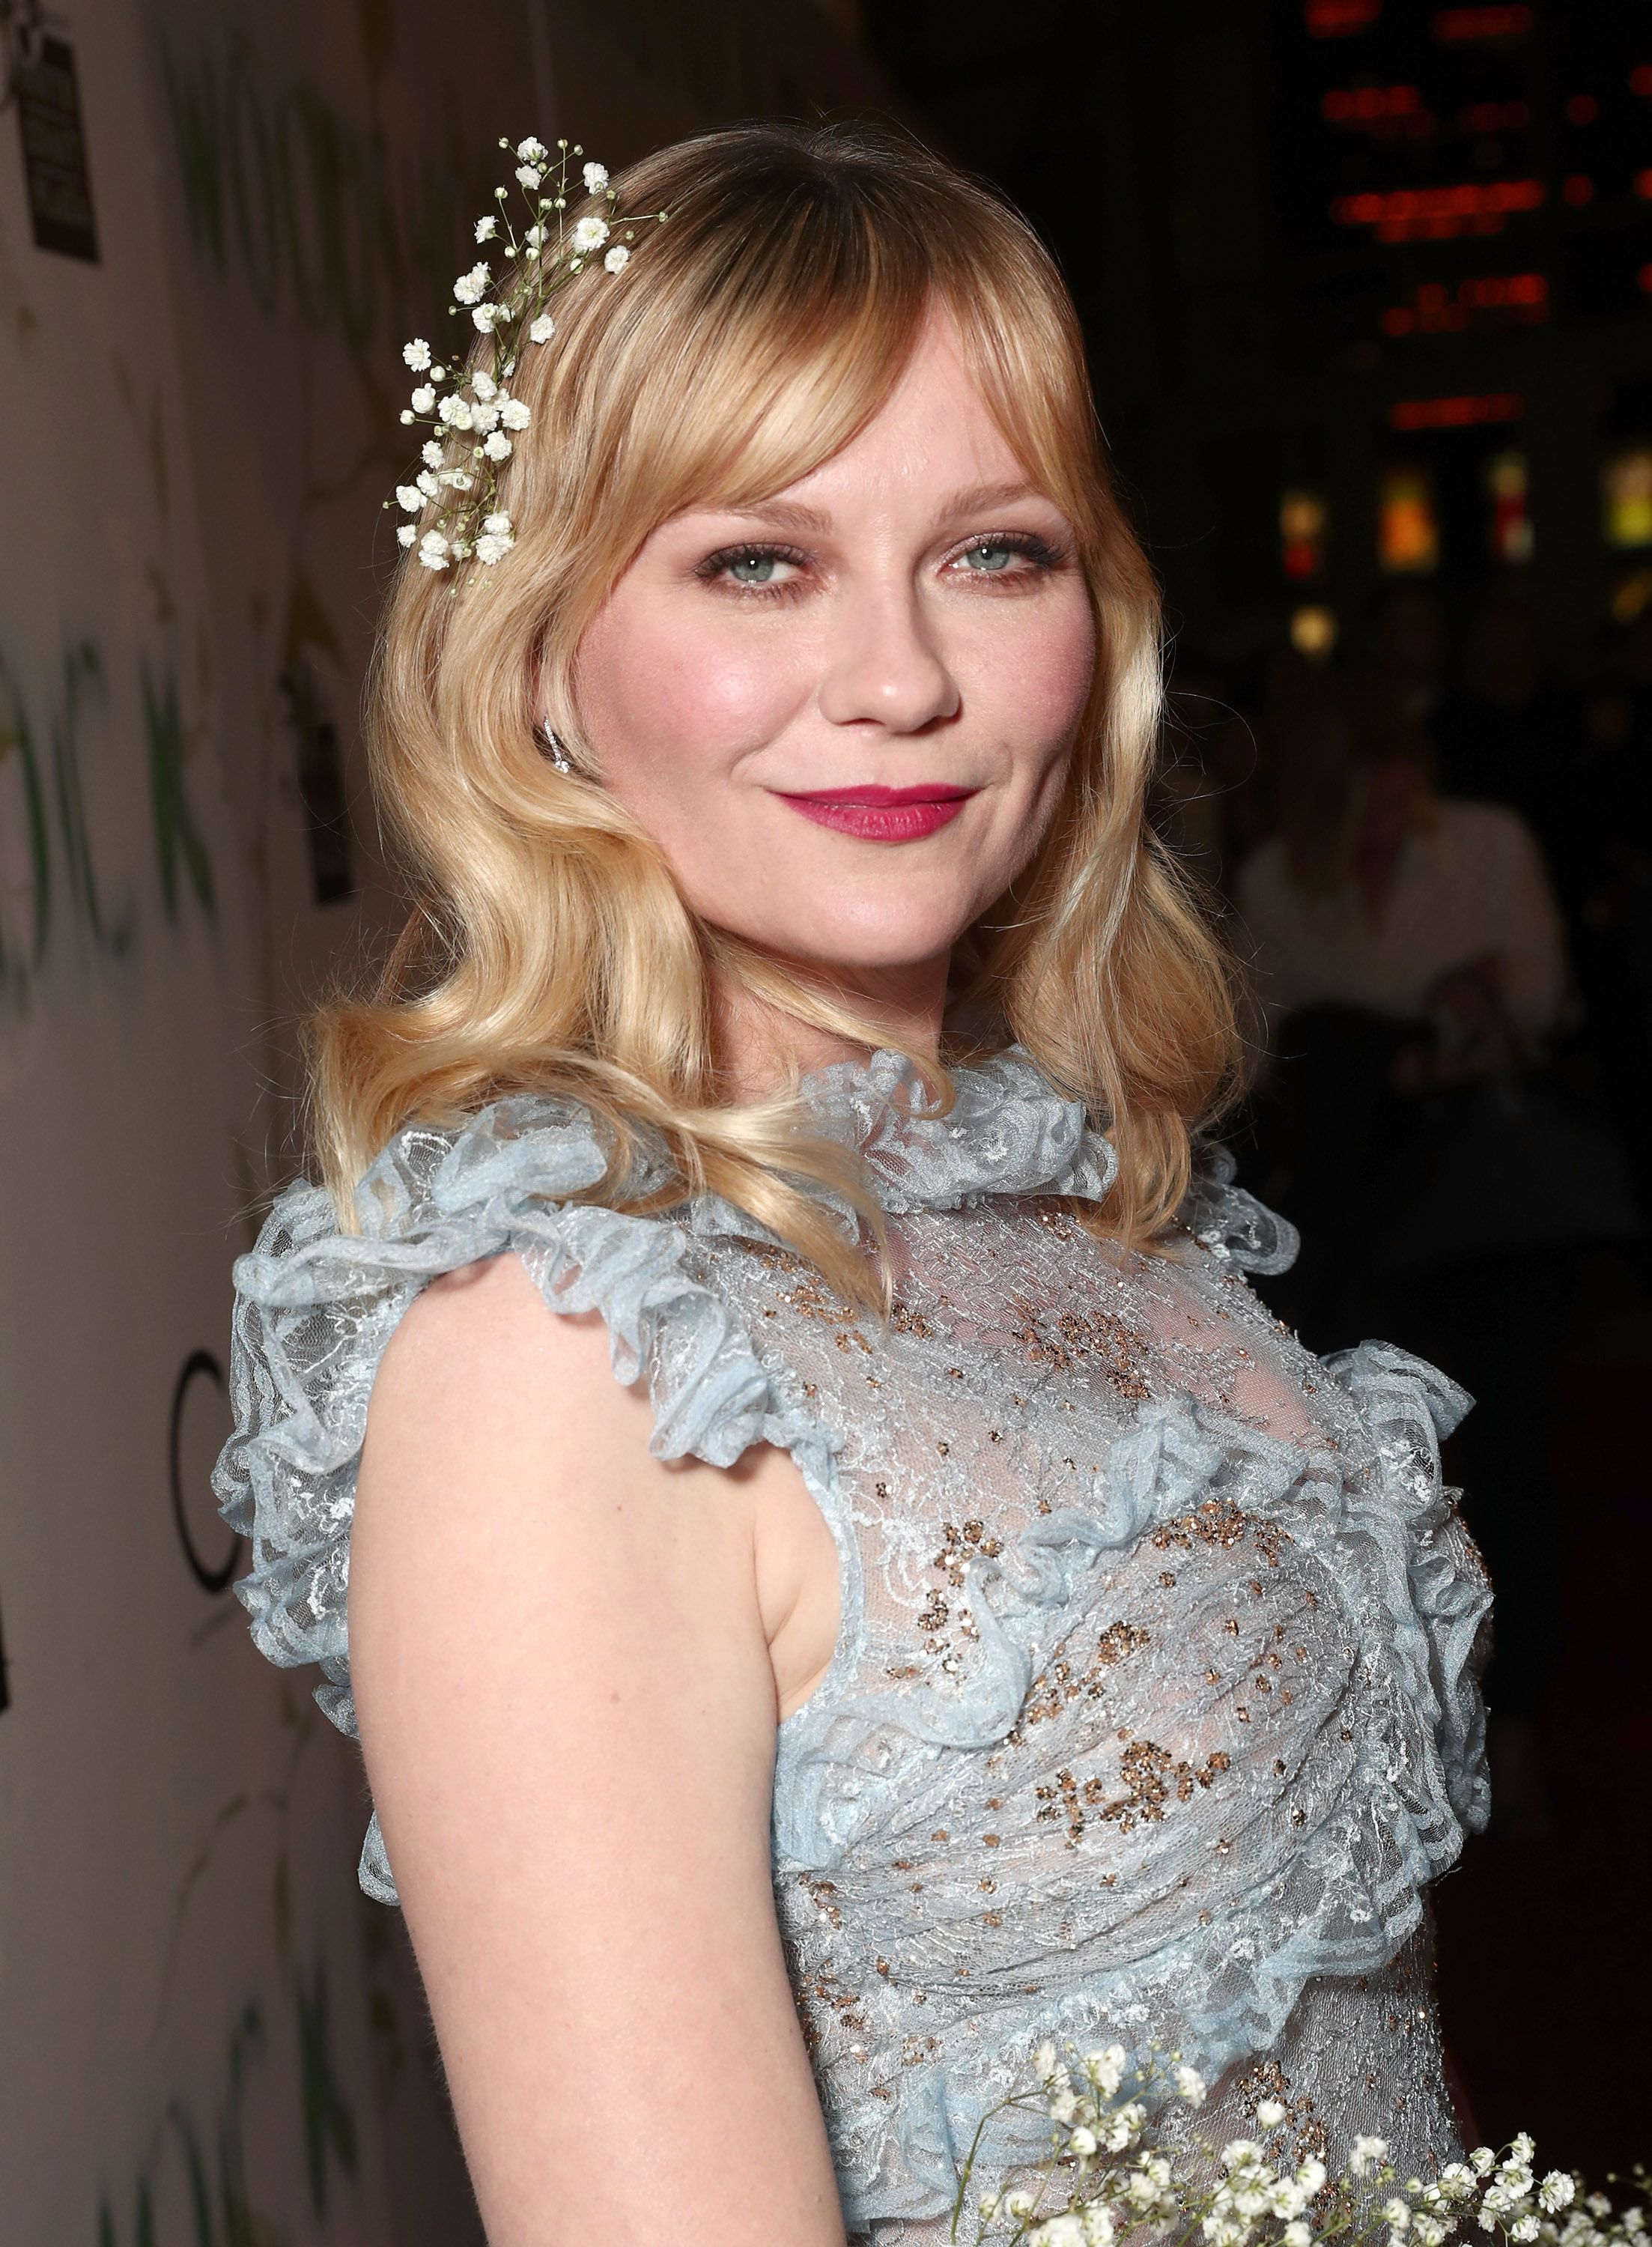 """Kirsten Dunst attends the premiere Of A24's """"Woodshock"""" at ArcLight Cinemas on September 18, 2017 in Hollywood, California. 